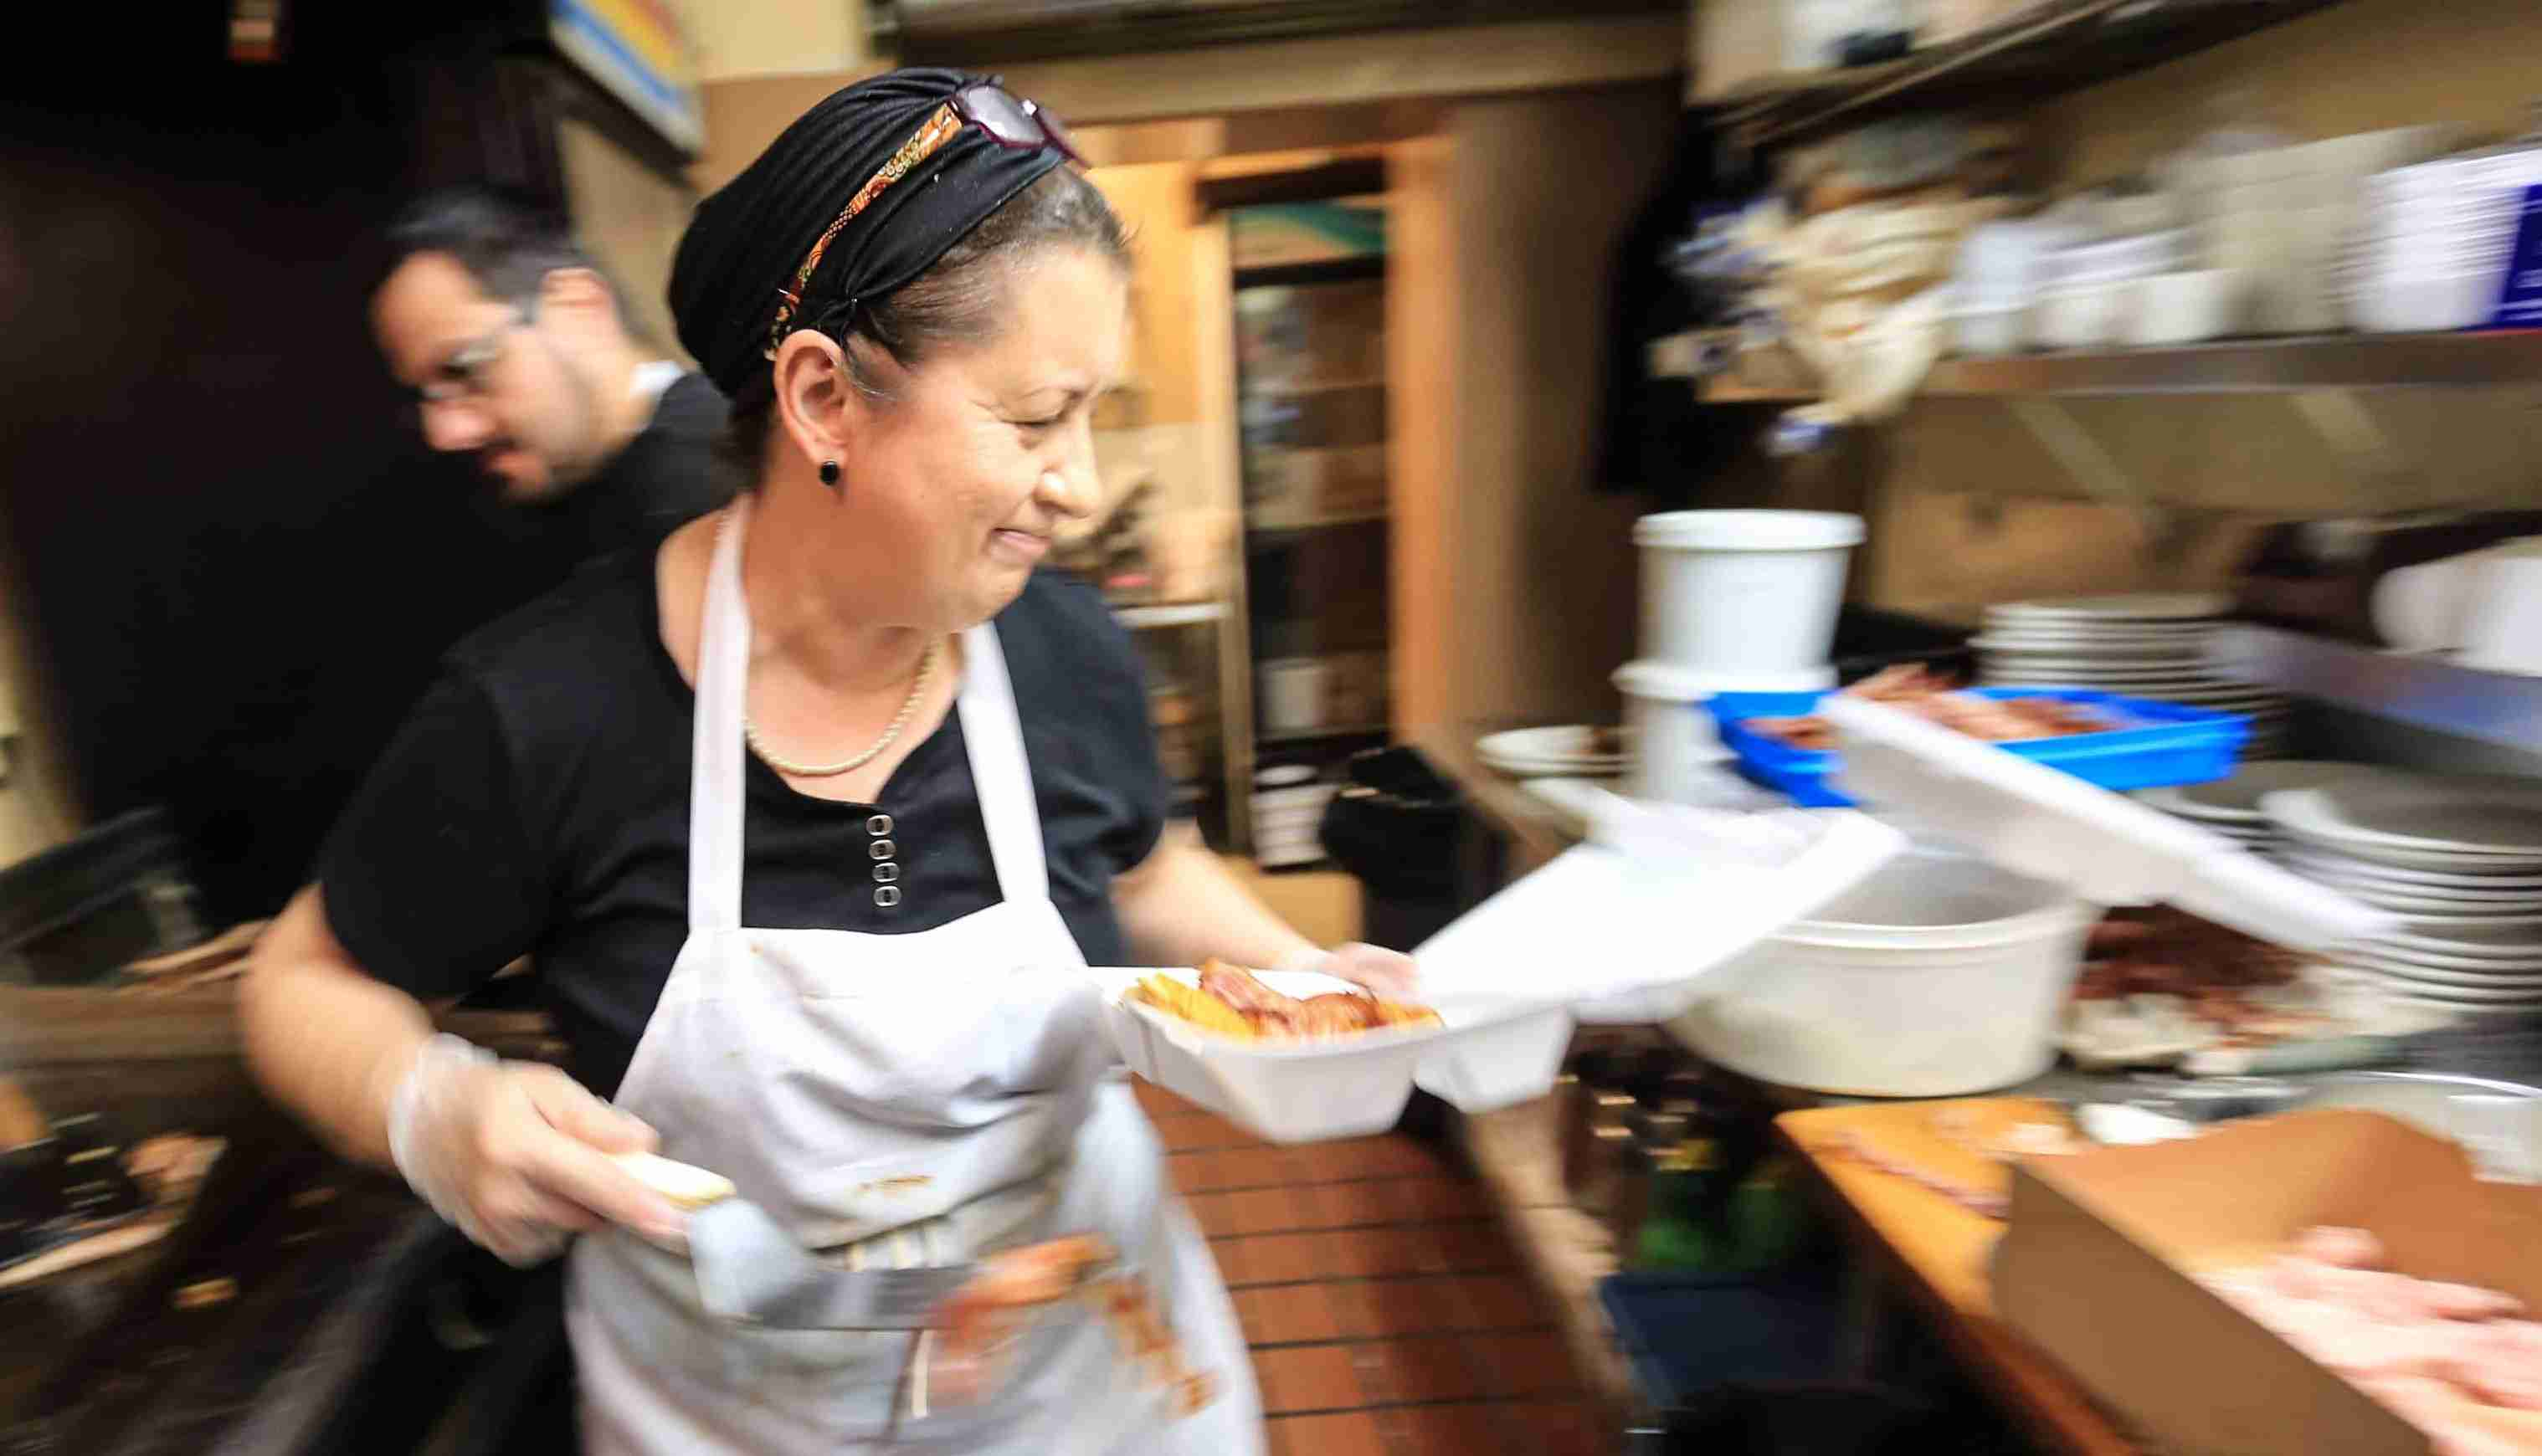 Libby Hantzandreou, owner of Libby's Restaurant on 8th and Tatnall St., cooks up breakfast for her customers in the kitchen.Wil Libby Retires